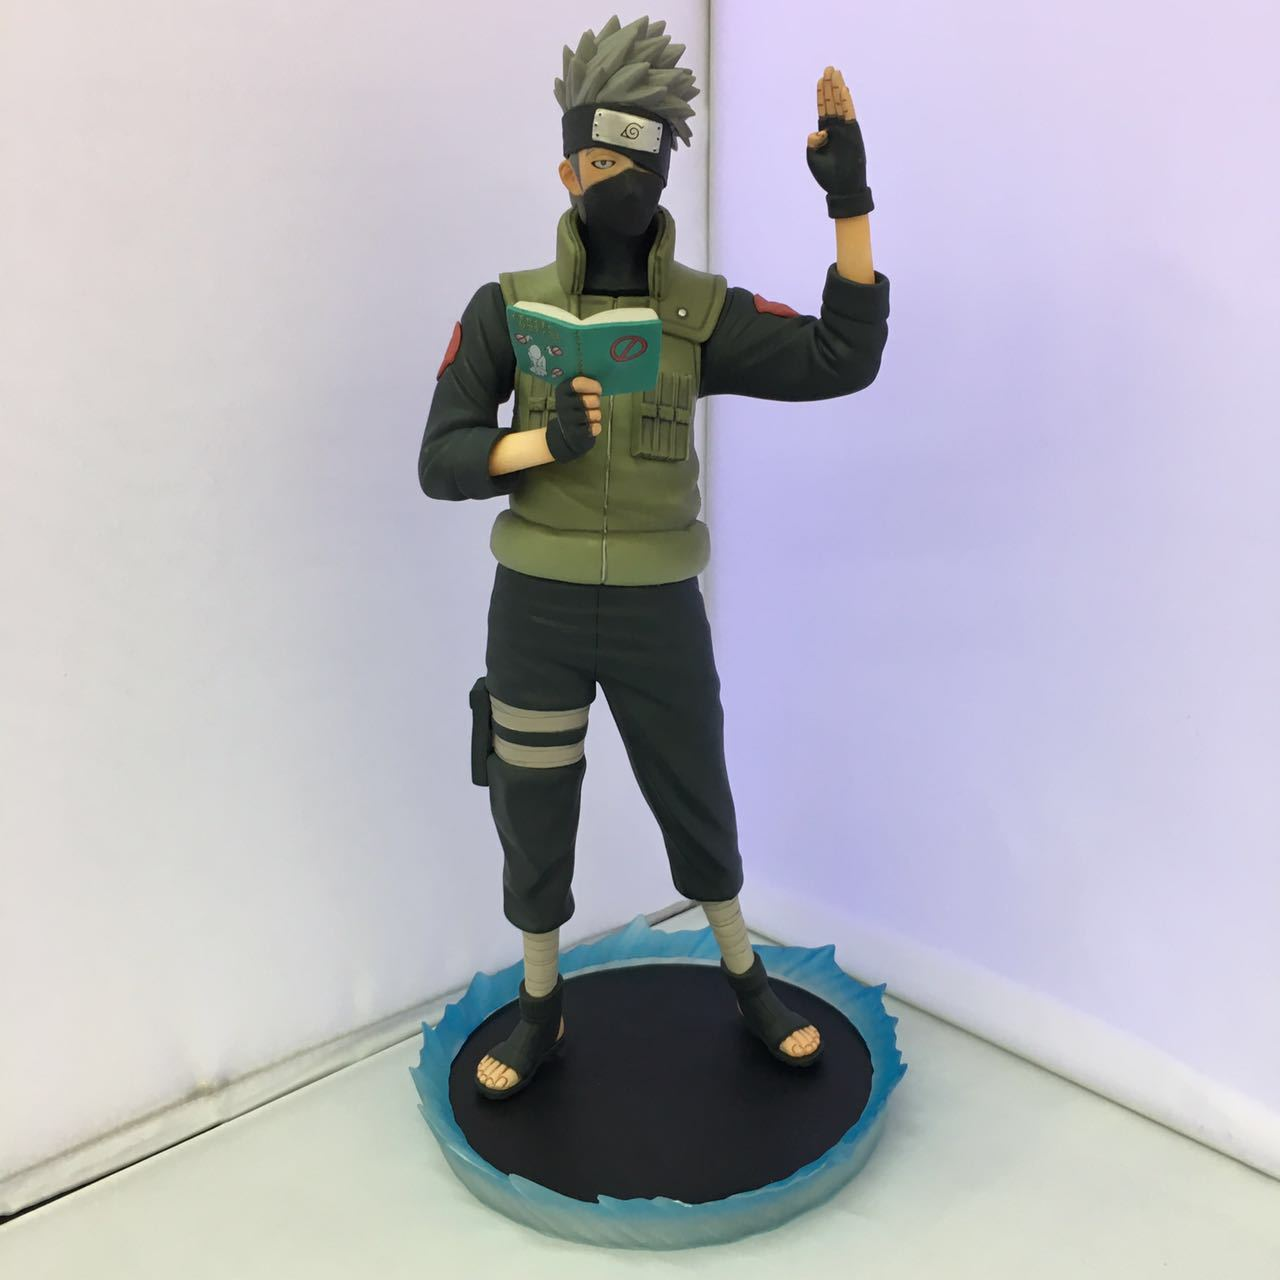 Naruto Kakashi Hatake Action Figure Sharingan Ver. Kakashi Doll PVC Action Figure Collectible Model Toy 30cm KT3510 free shipping japanese anime naruto hatake kakashi pvc action figure model toys dolls 9 22cm 013